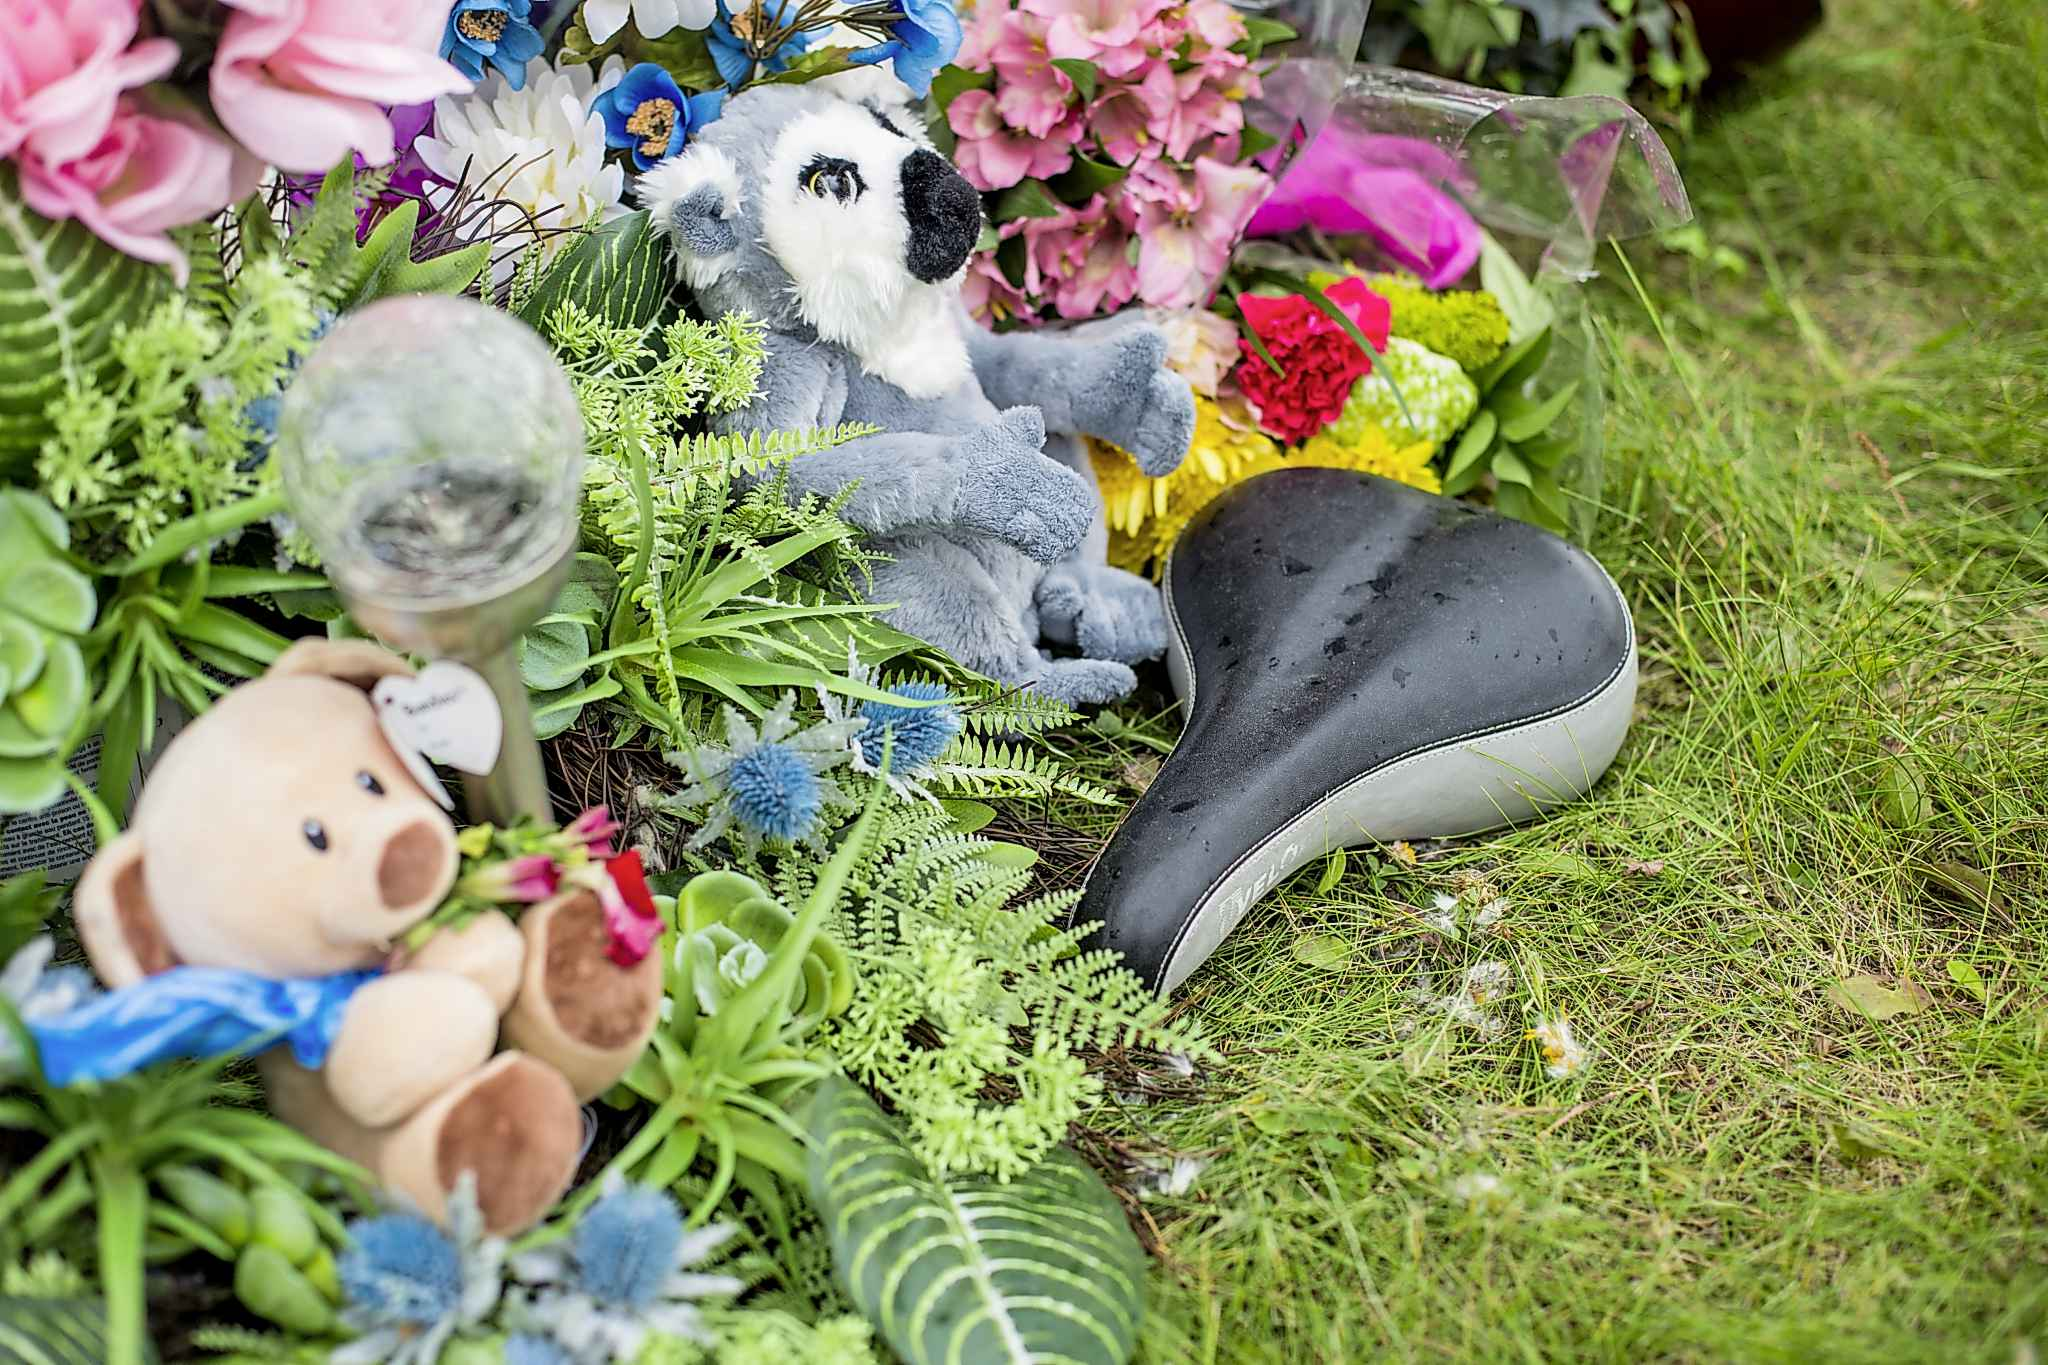 The makeshift memorial at Donald road and highway nine, where Ben Harris was killed in a hit-and-run, in the R.M. of St. Andrews.